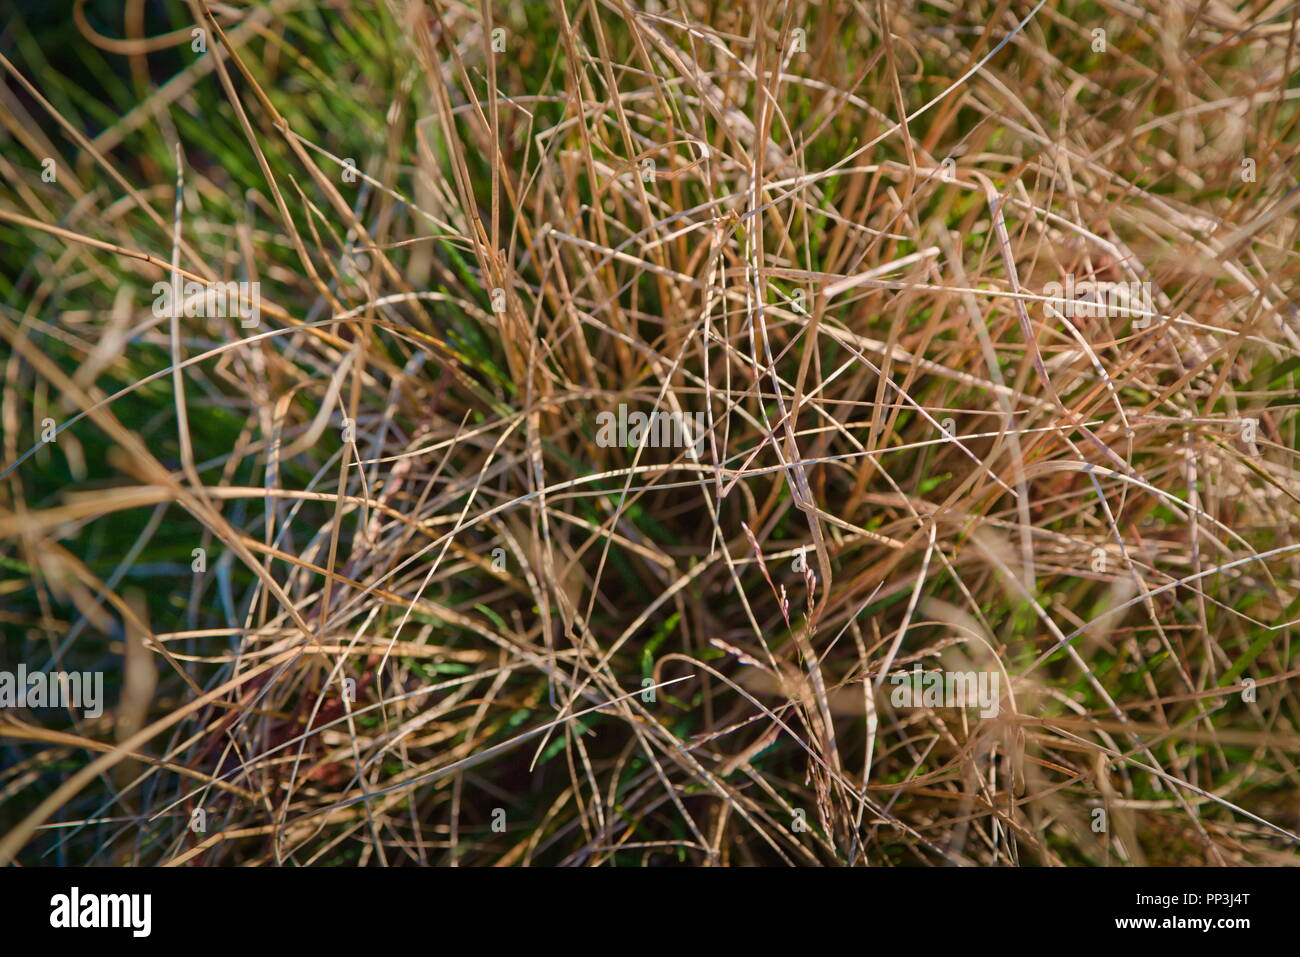 Dry Grass Close-Up - Stock Image